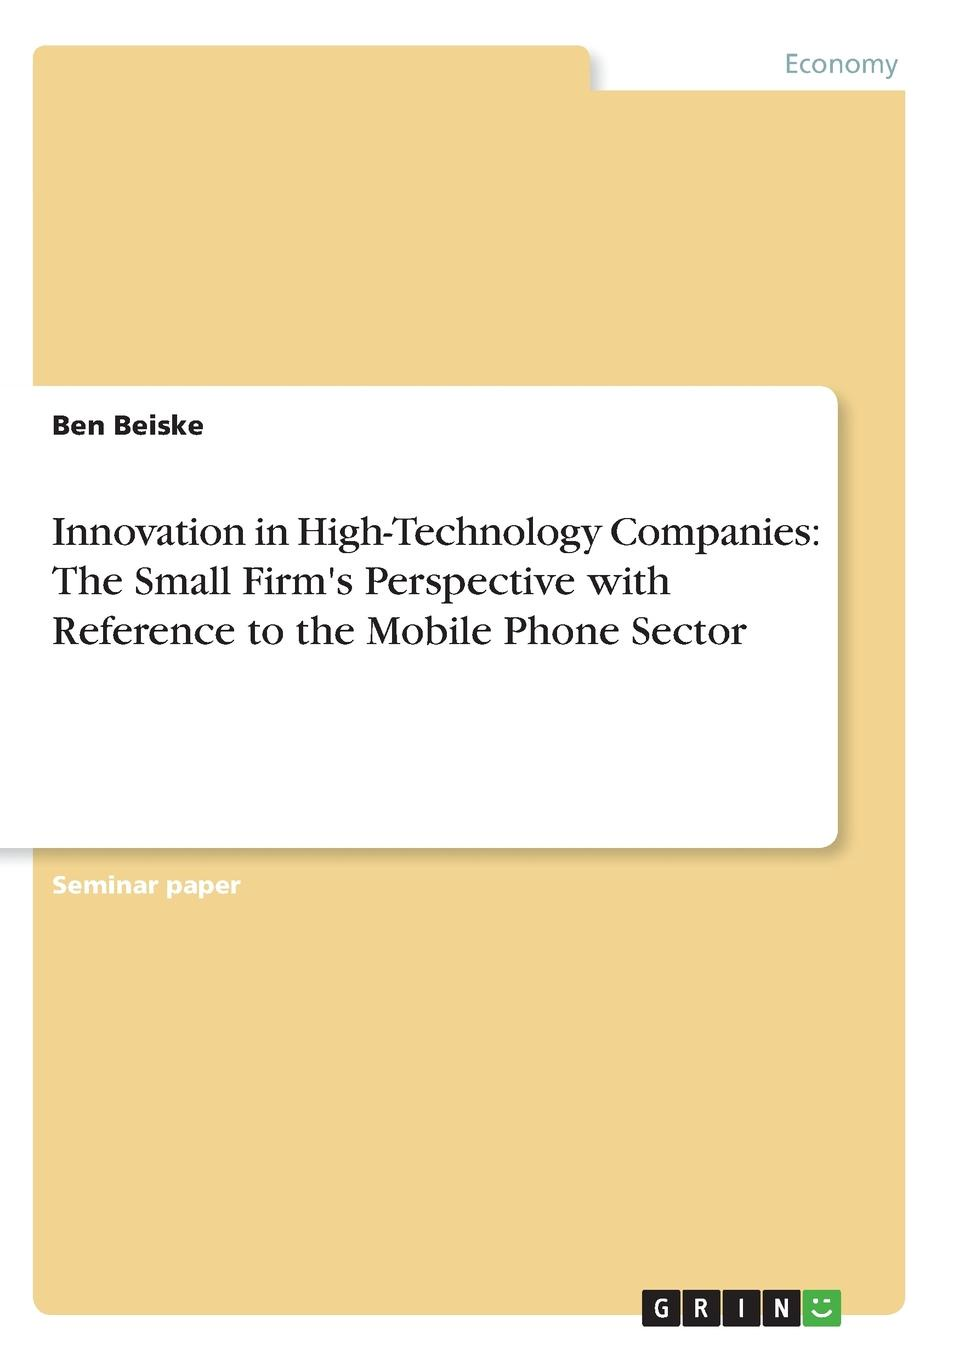 Ben Beiske Innovation in High-Technology Companies. The Small Firm.s Perspective with Reference to the Mobile Phone Sector intellectual property and innovation management in small firms